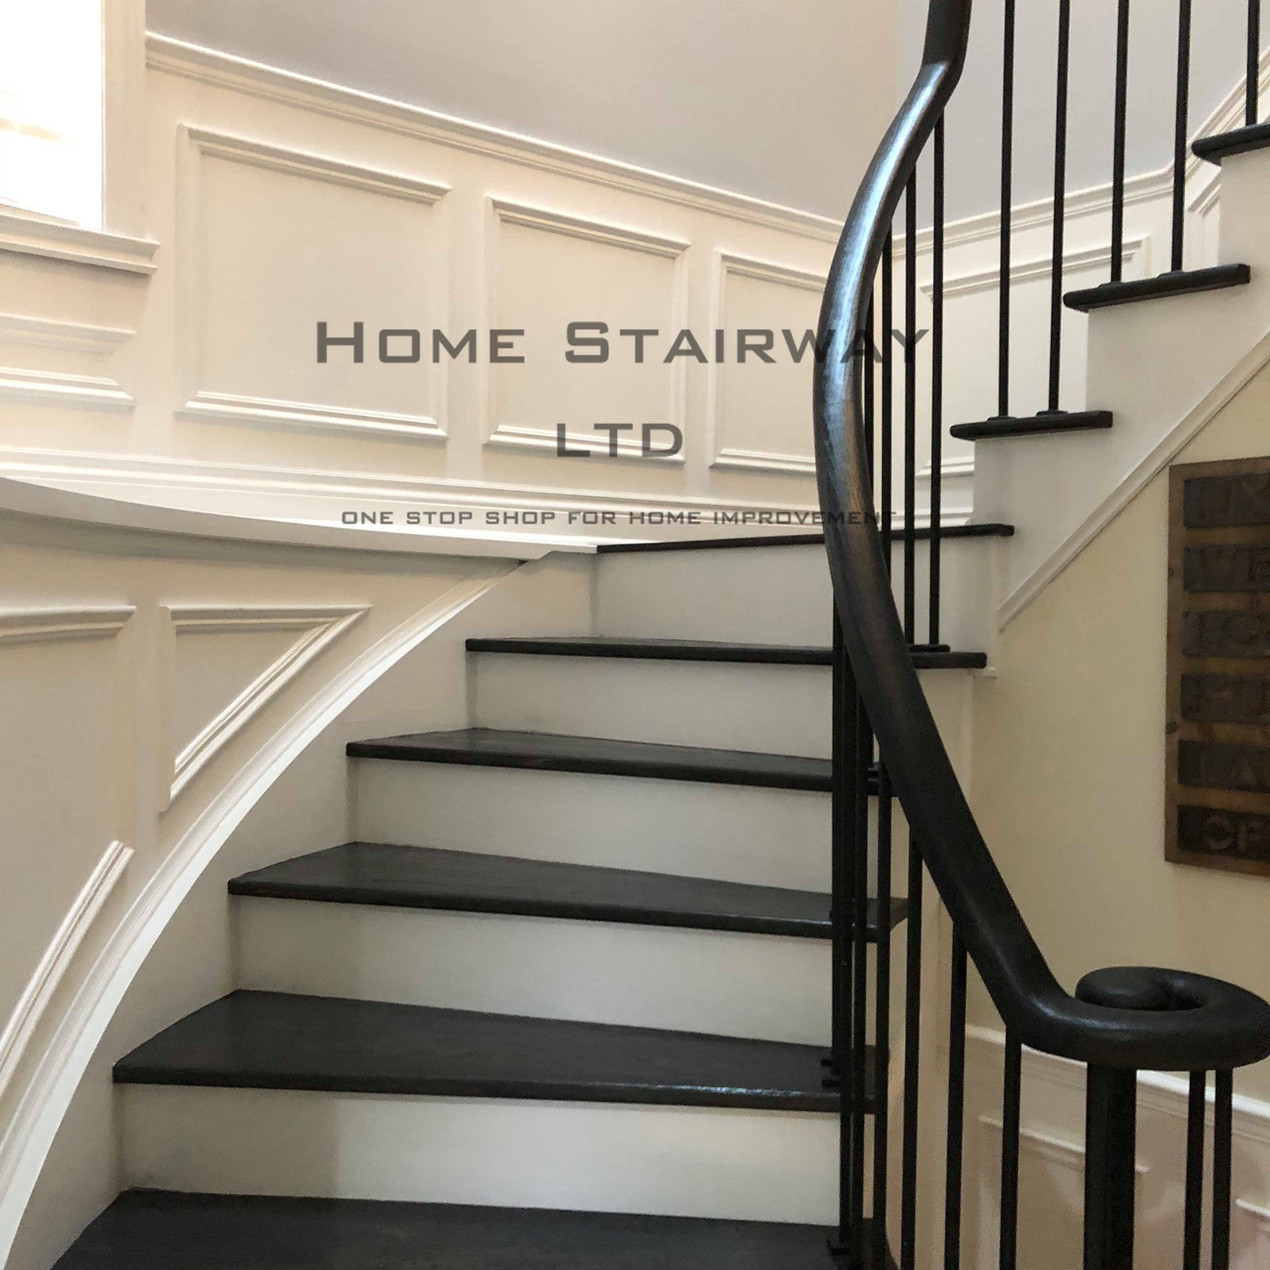 Stairs refacing job done by Home Stairway. Simple plain iron picket. Elegant